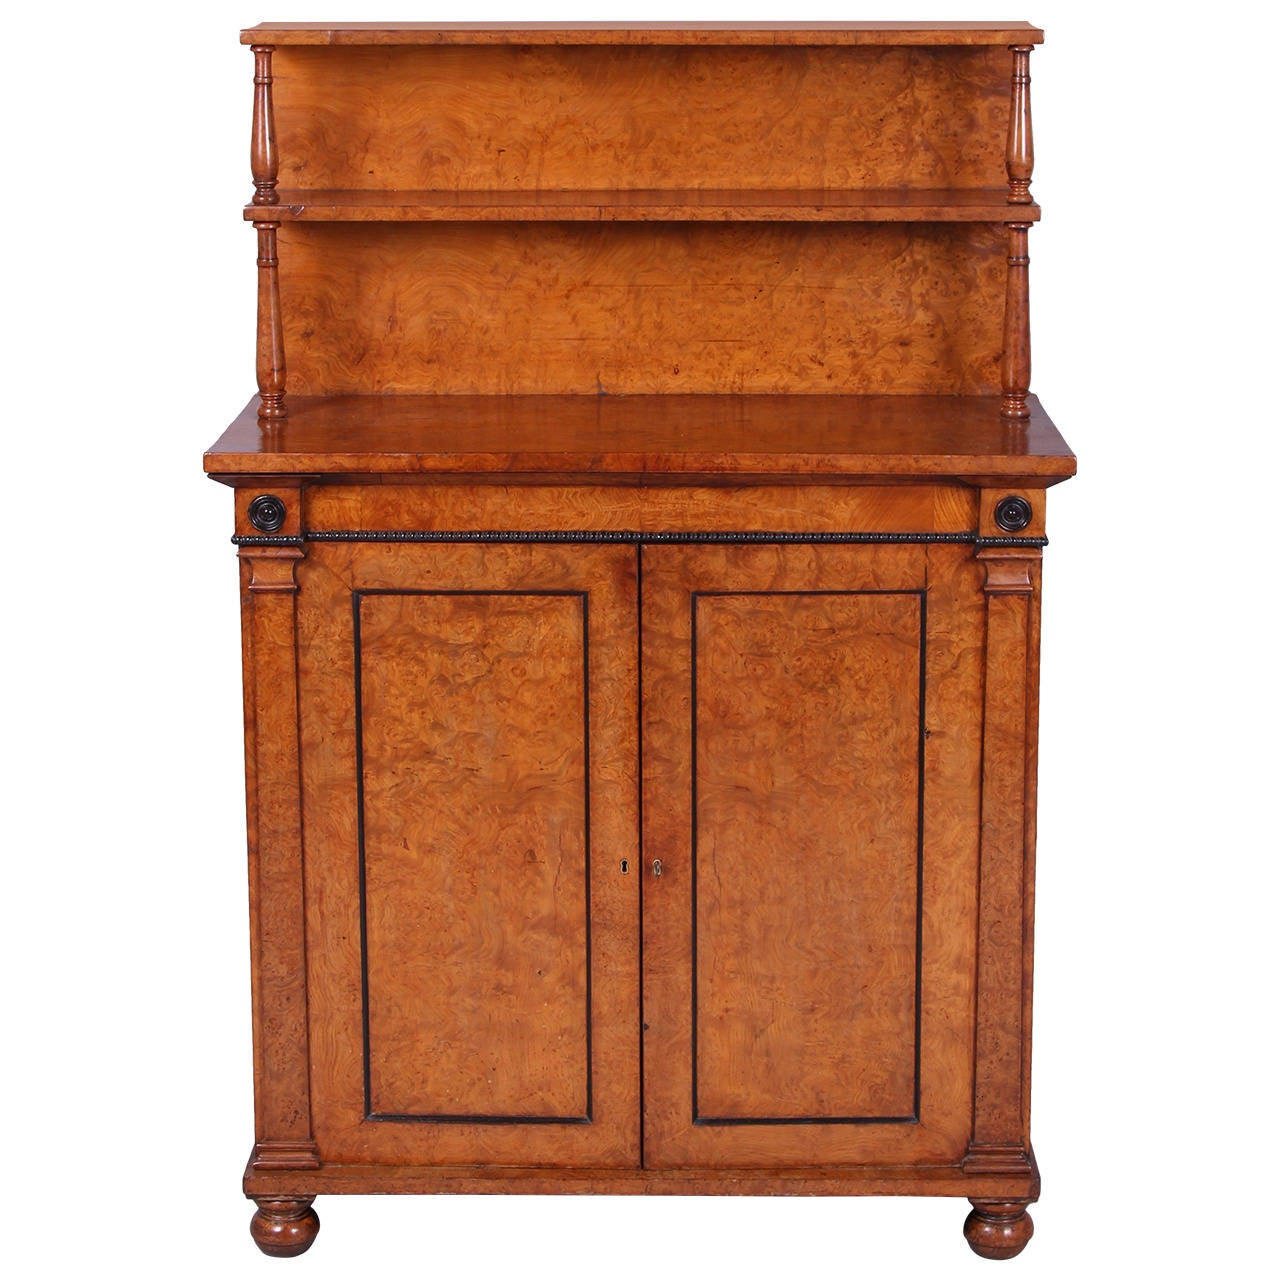 Superb Quality Regency Chiffonier Cabinet of Small Proportions For Sale